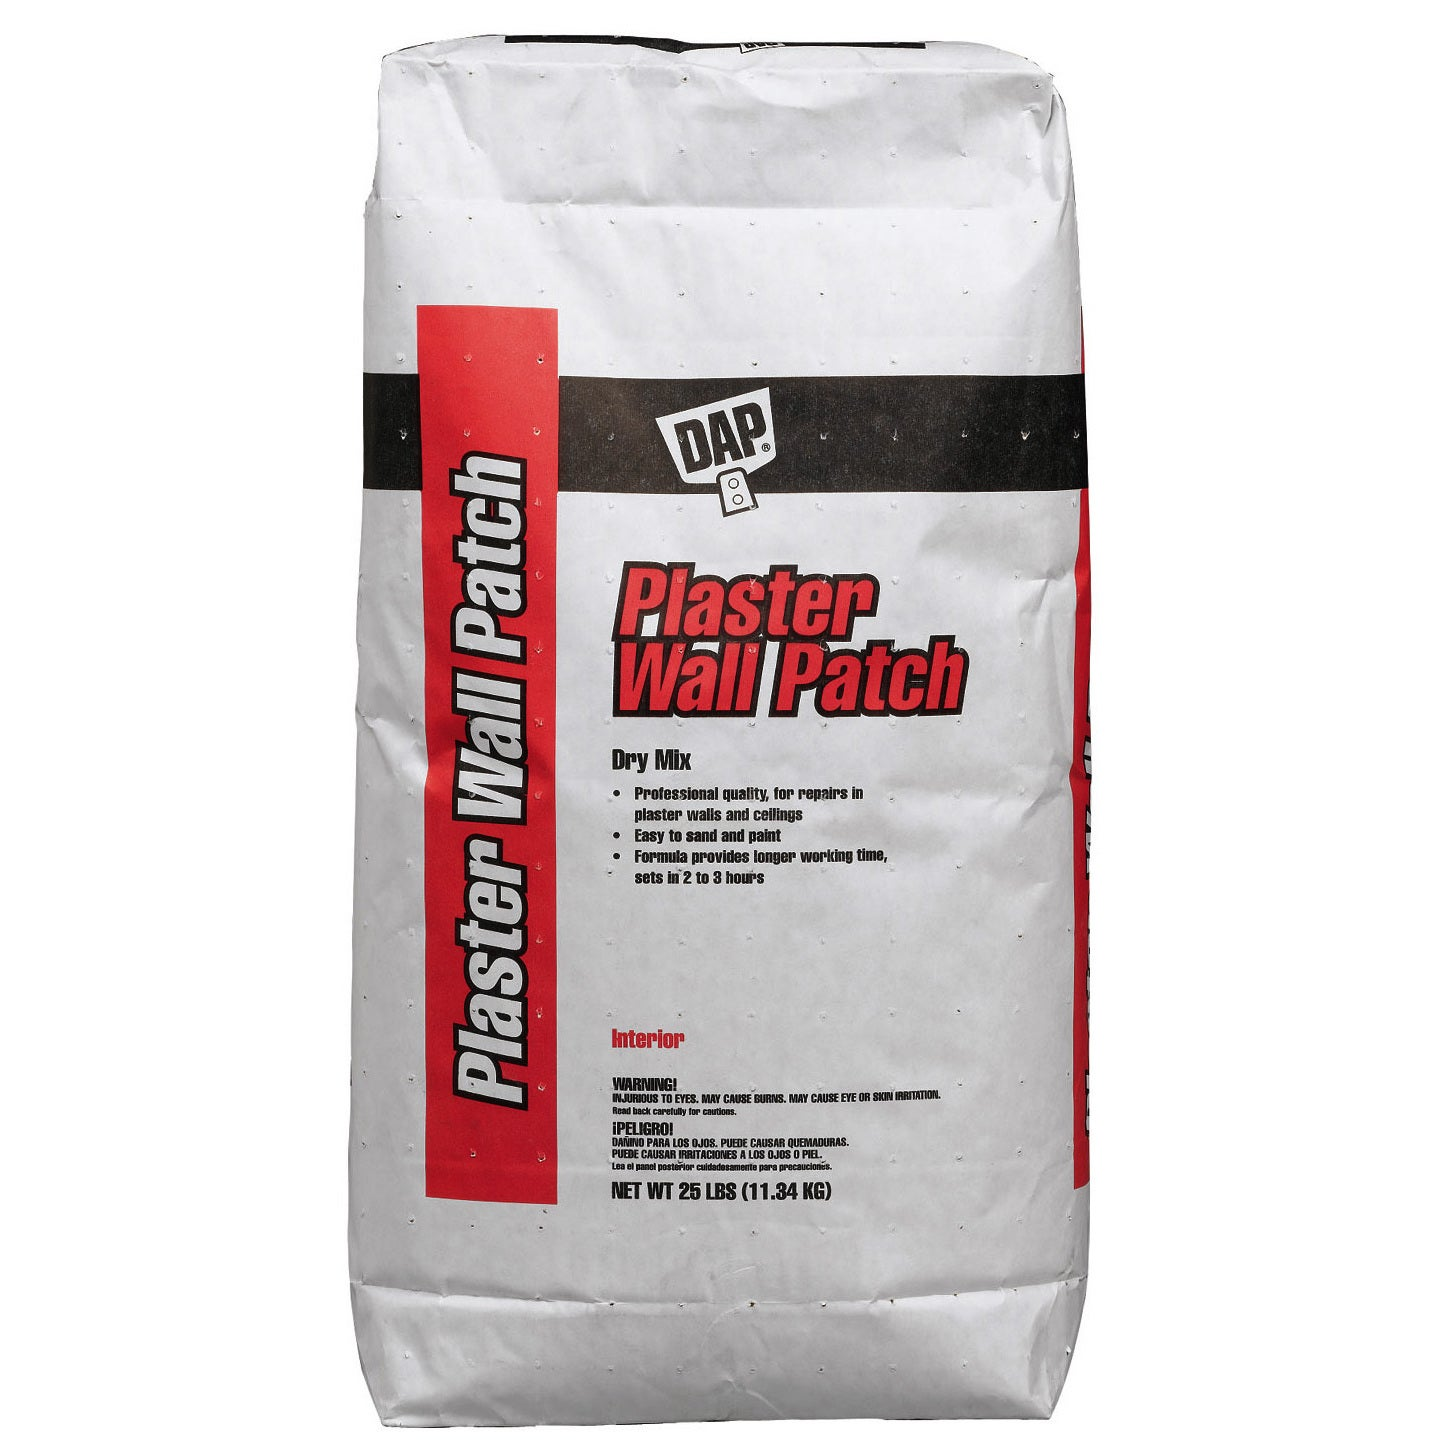 DAP 10304 25 Lb Plaster Wall Patch Exterior (Spackling & ...